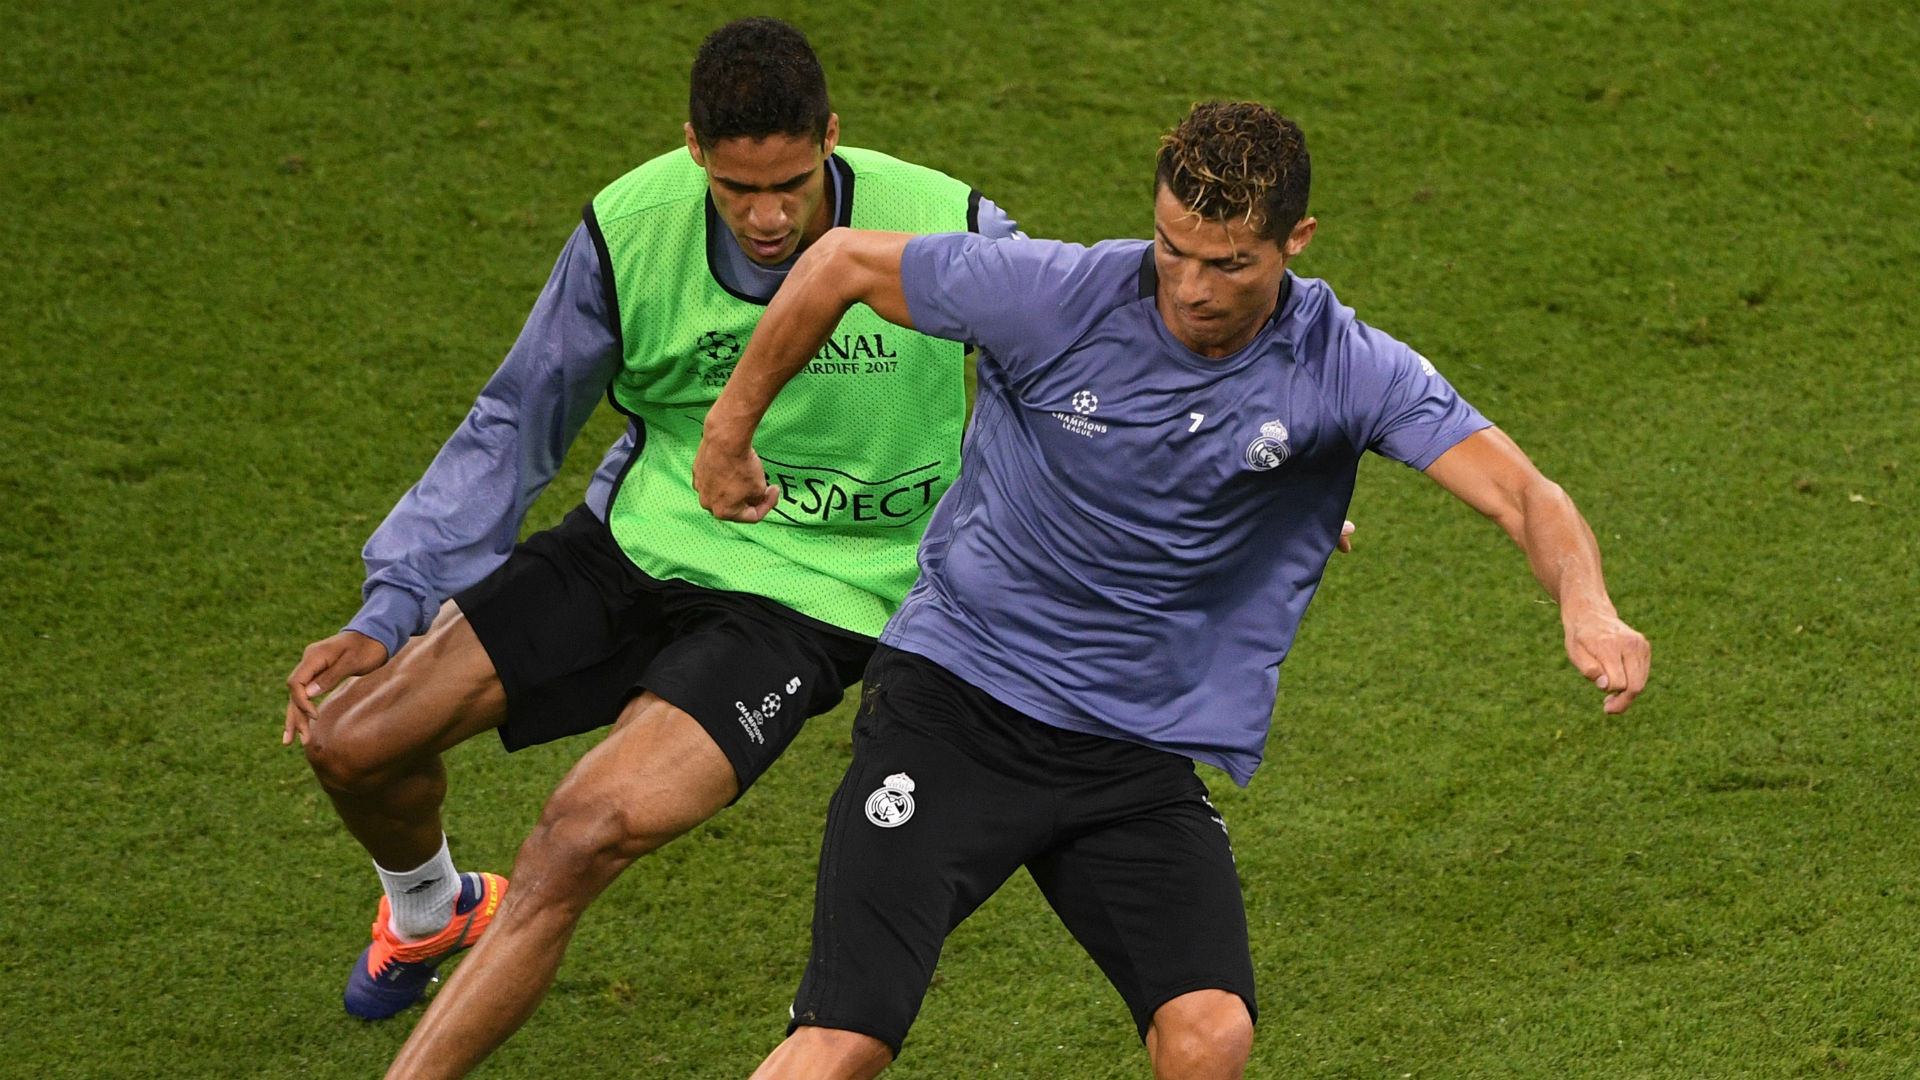 I wasn't disrespectful, but you must show character – Varane recounts snapping at Ronaldo